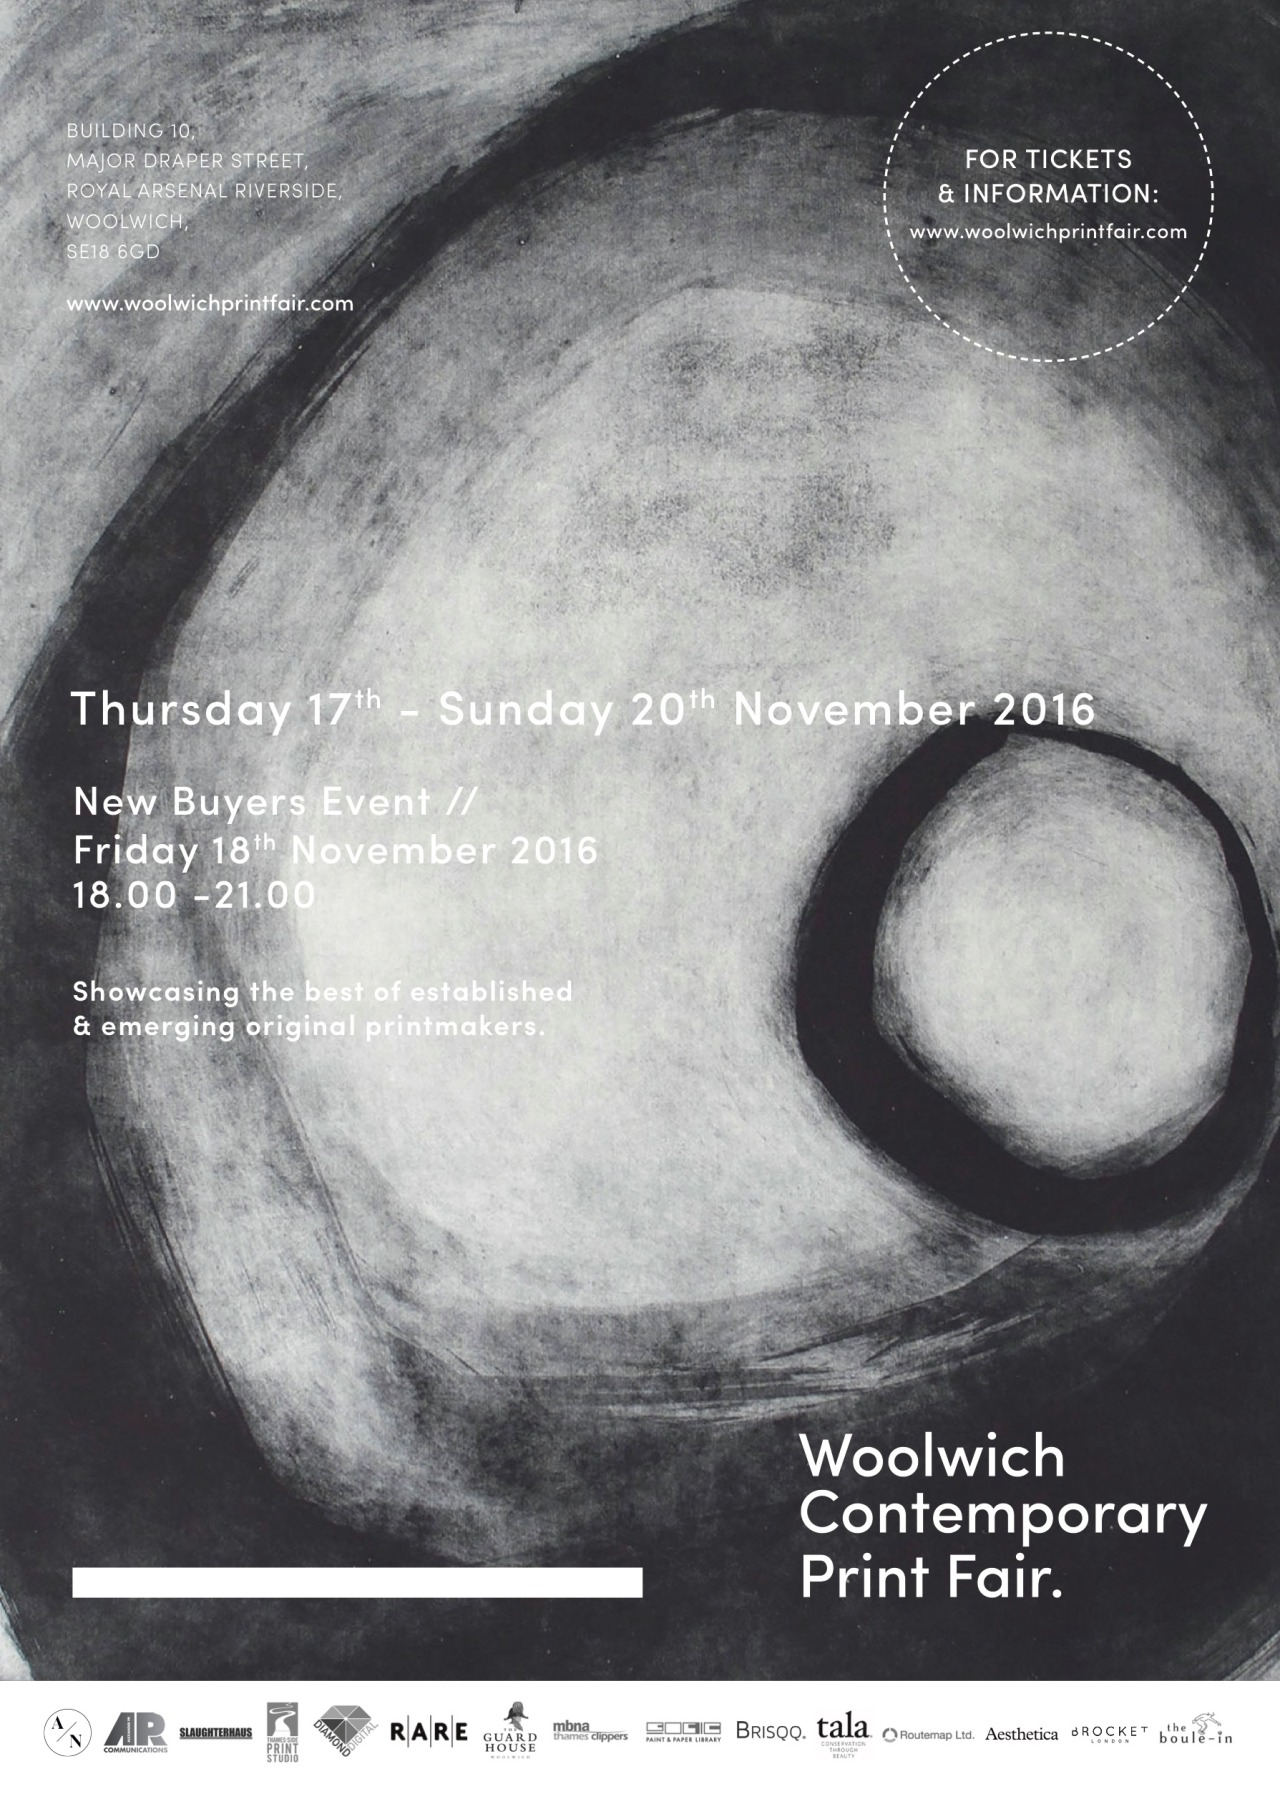 Very excited to be exhibiting my Sculptures and Prints at the Woolwich Contemporary Print Fair!    http://www.woolwichprintfair.com/visitor-information/